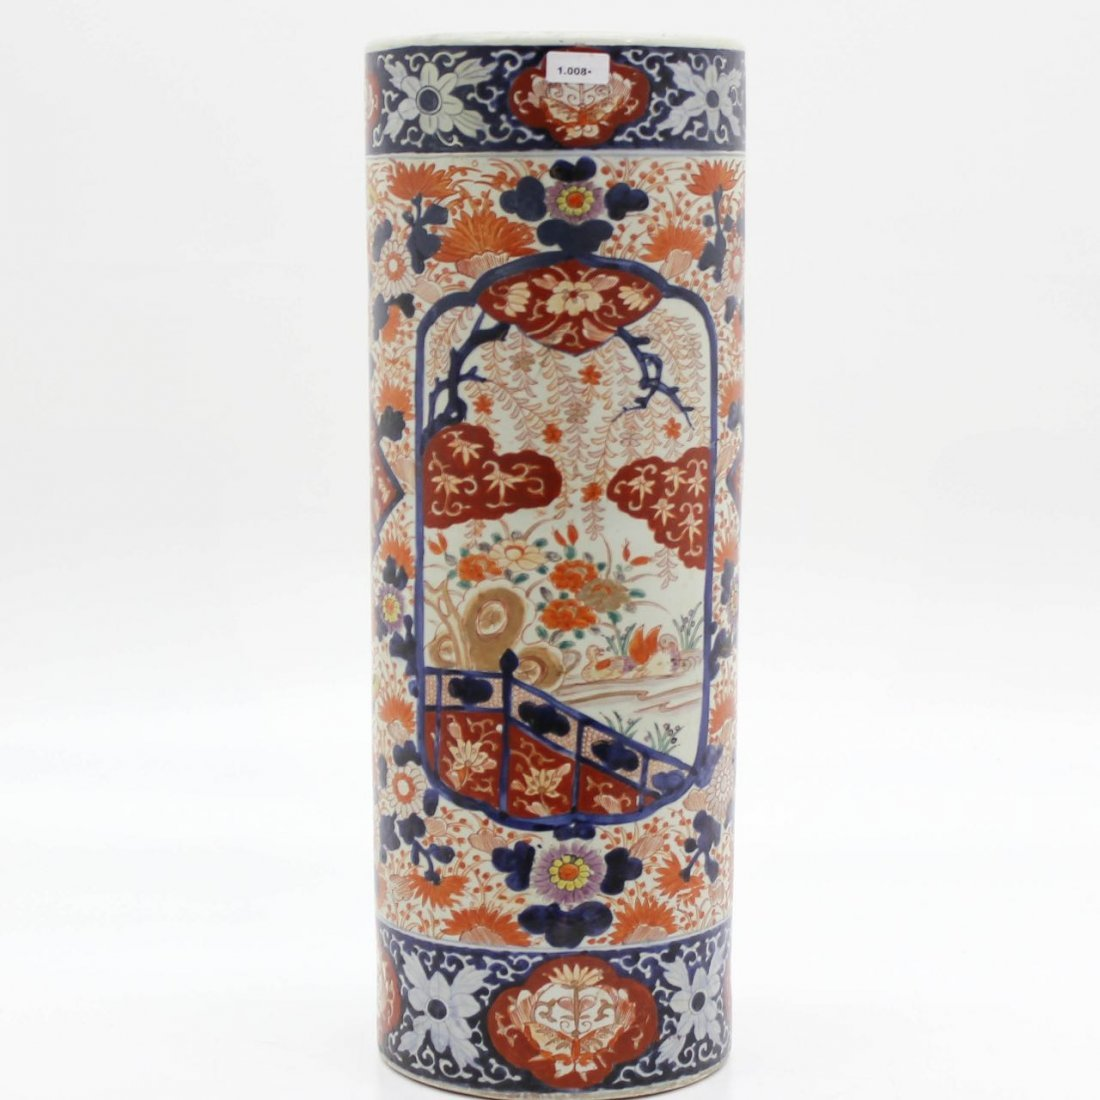 19th Century Japanese Porcelain Umbrella Stand